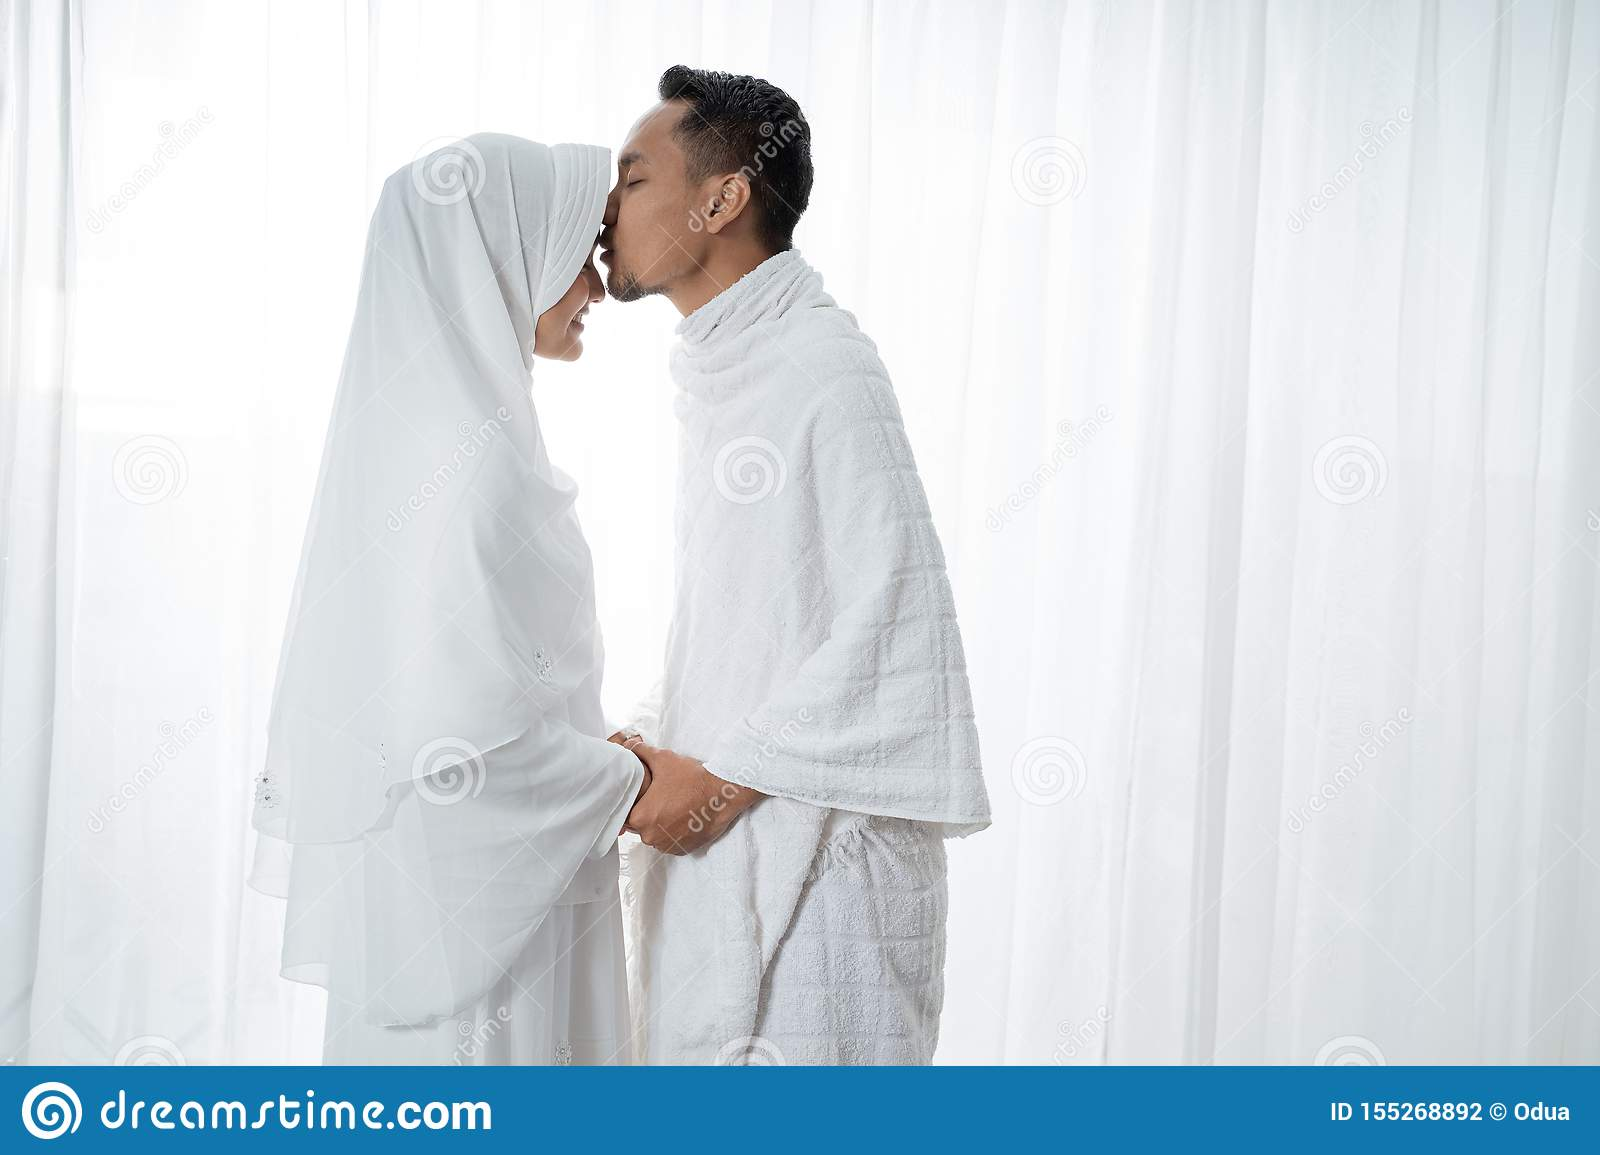 Husband wife romance islam and in Rights of